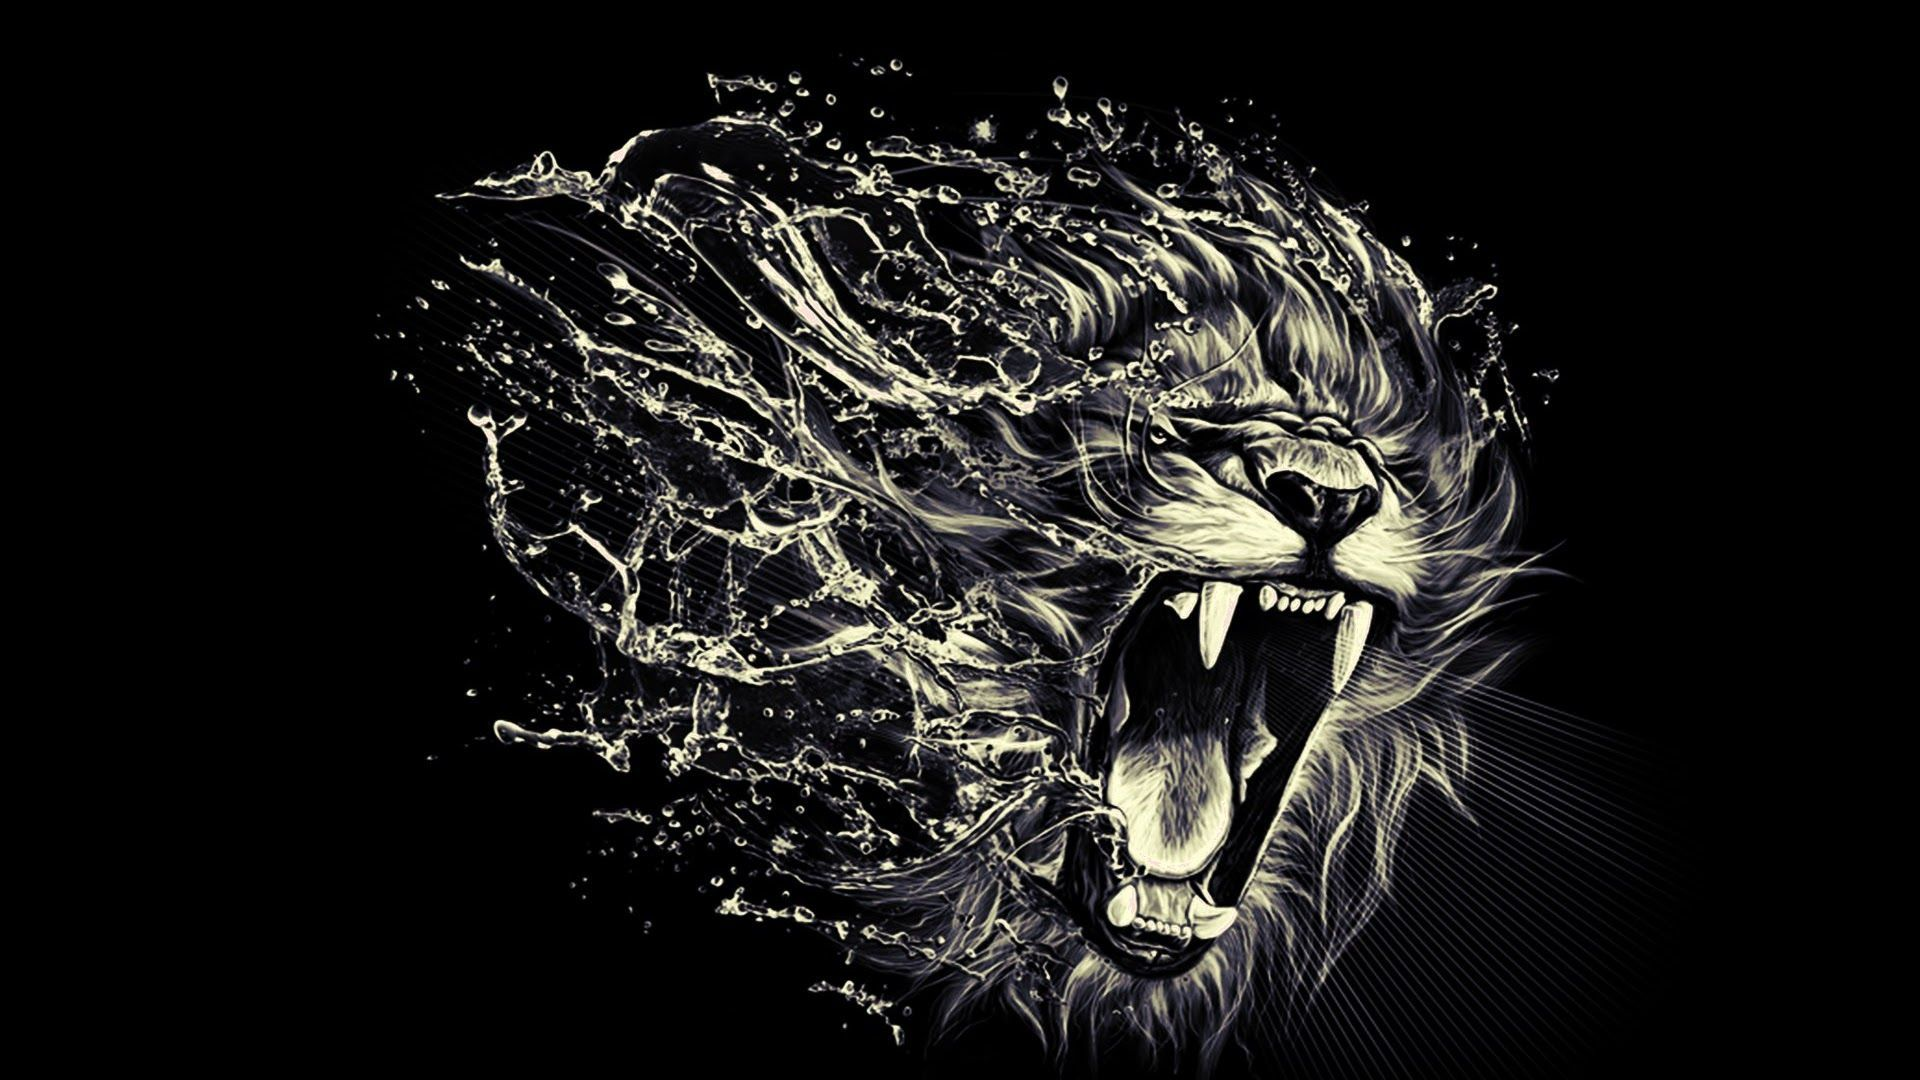 Lion Art wallpaper photo